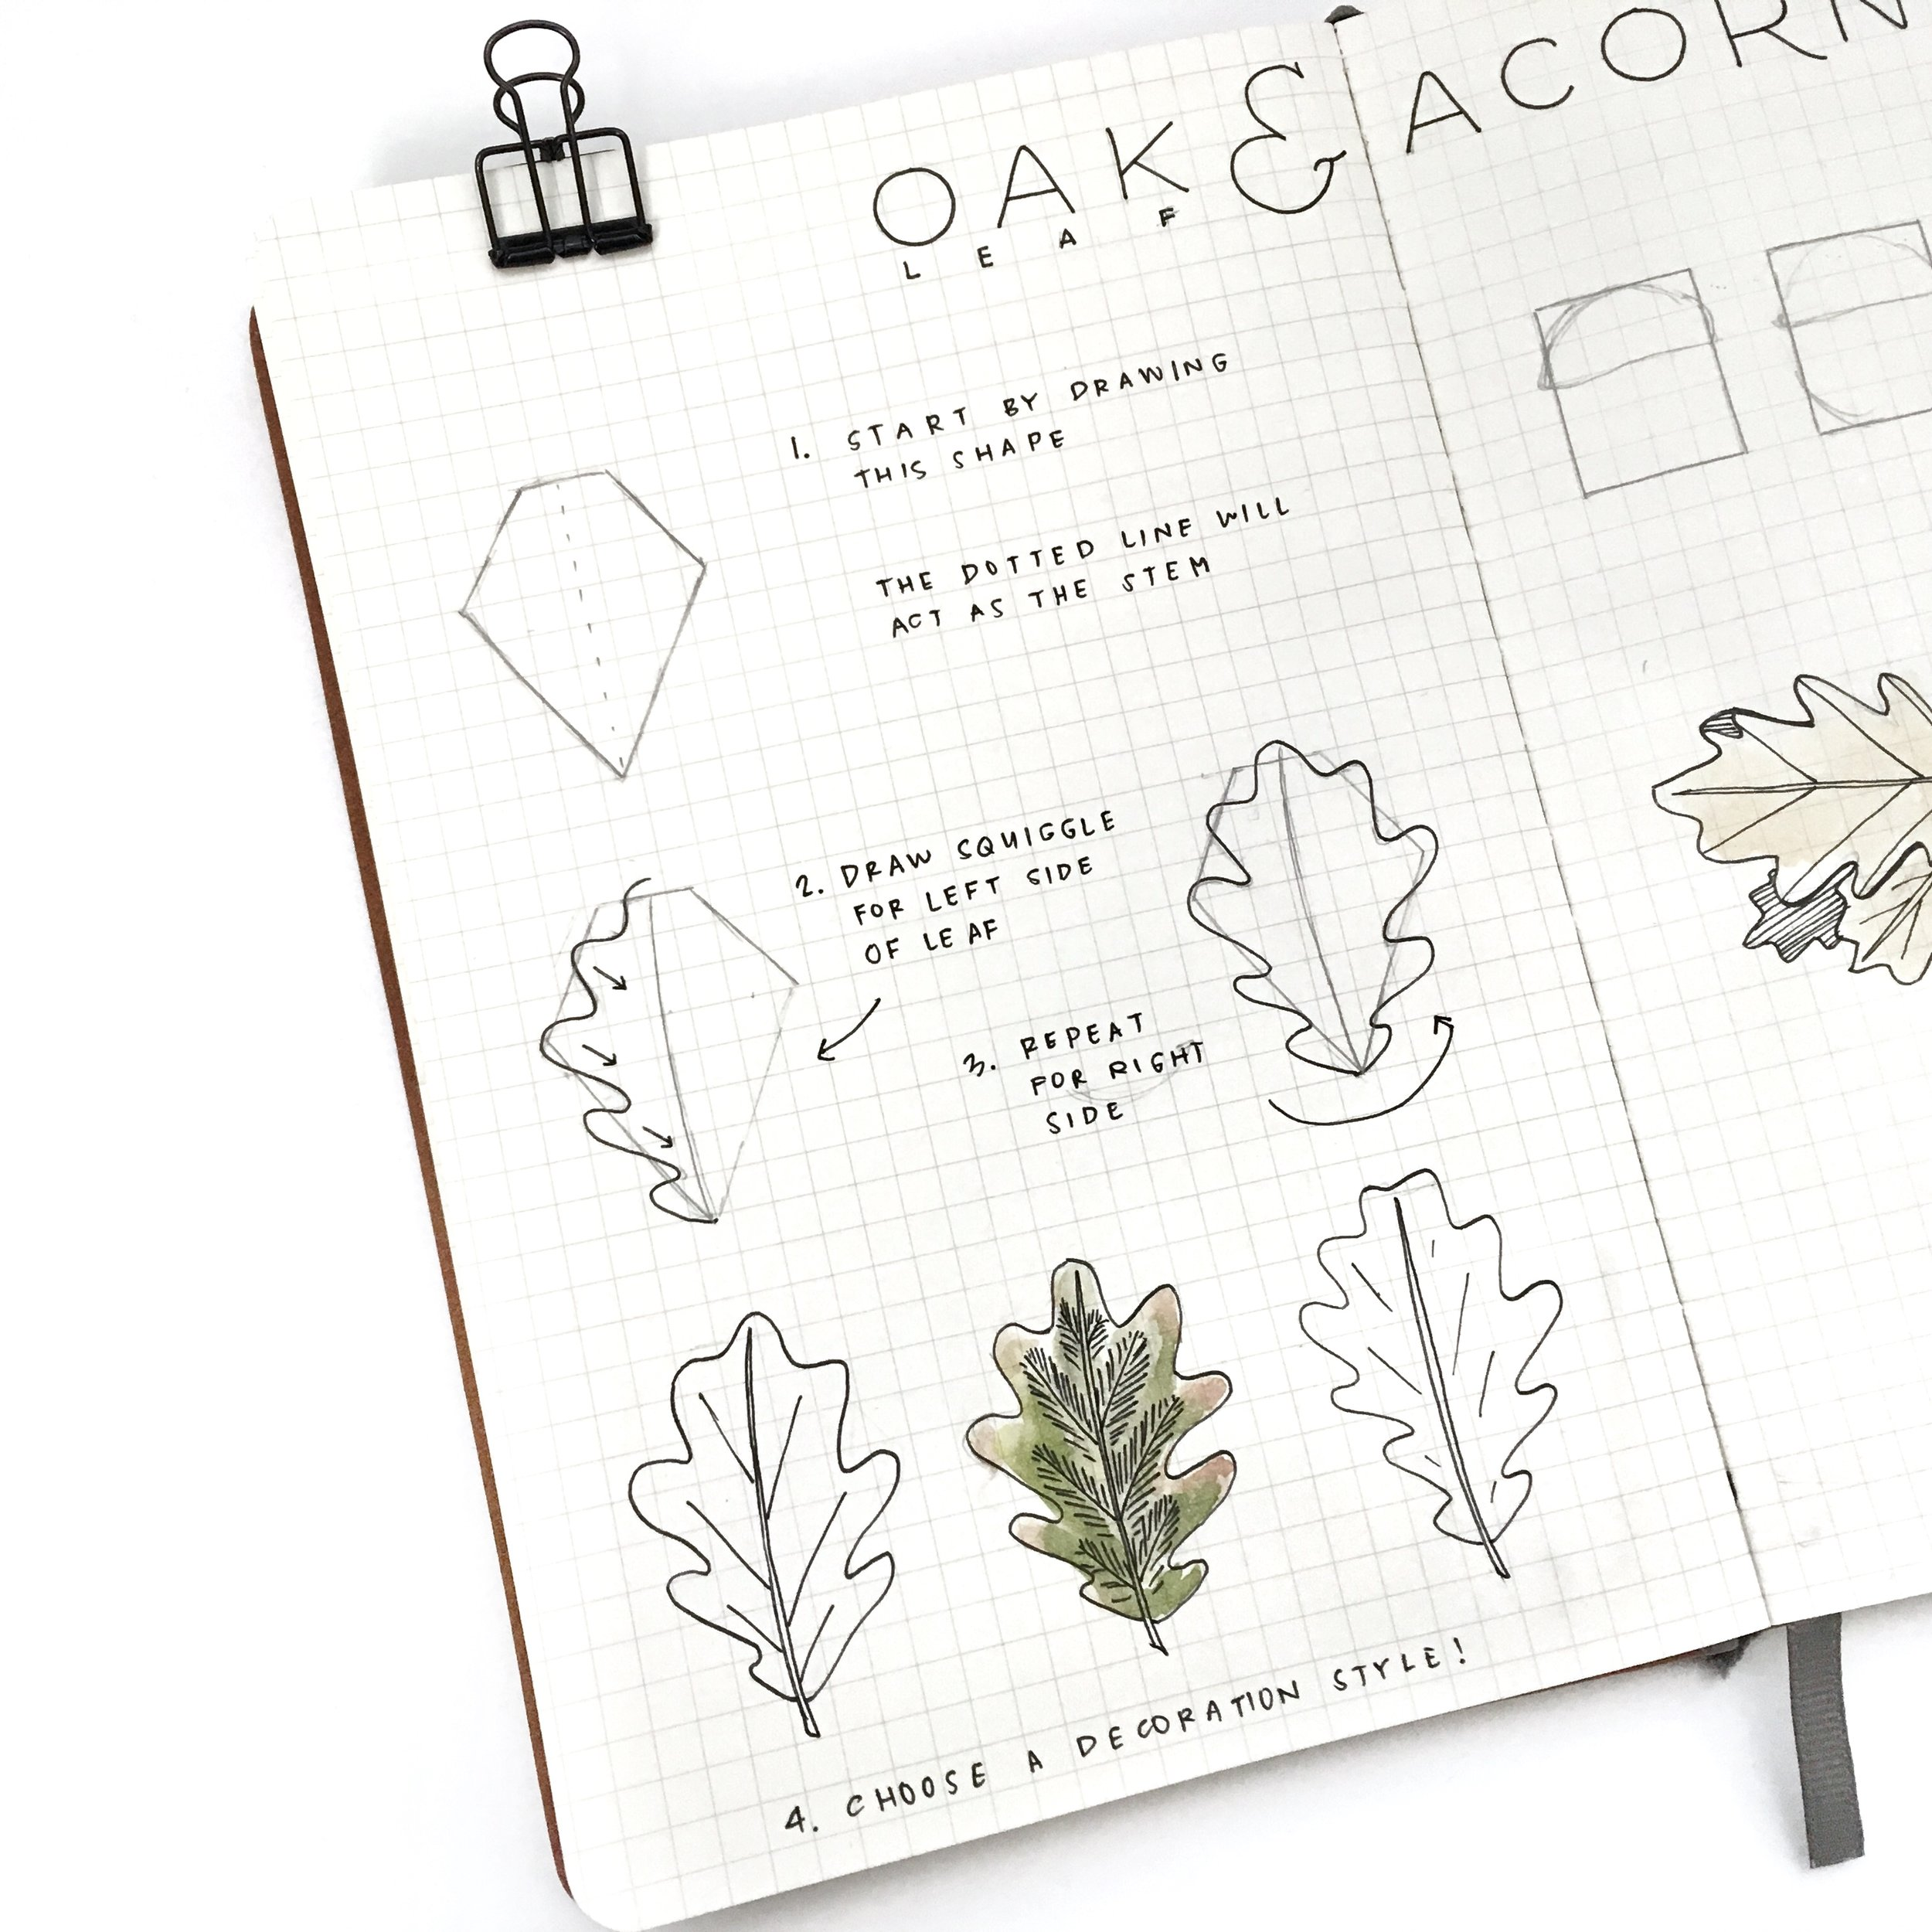 inkbyjeng-drawwithjeng-oak-leaves-and-acorn-02-left.jpg